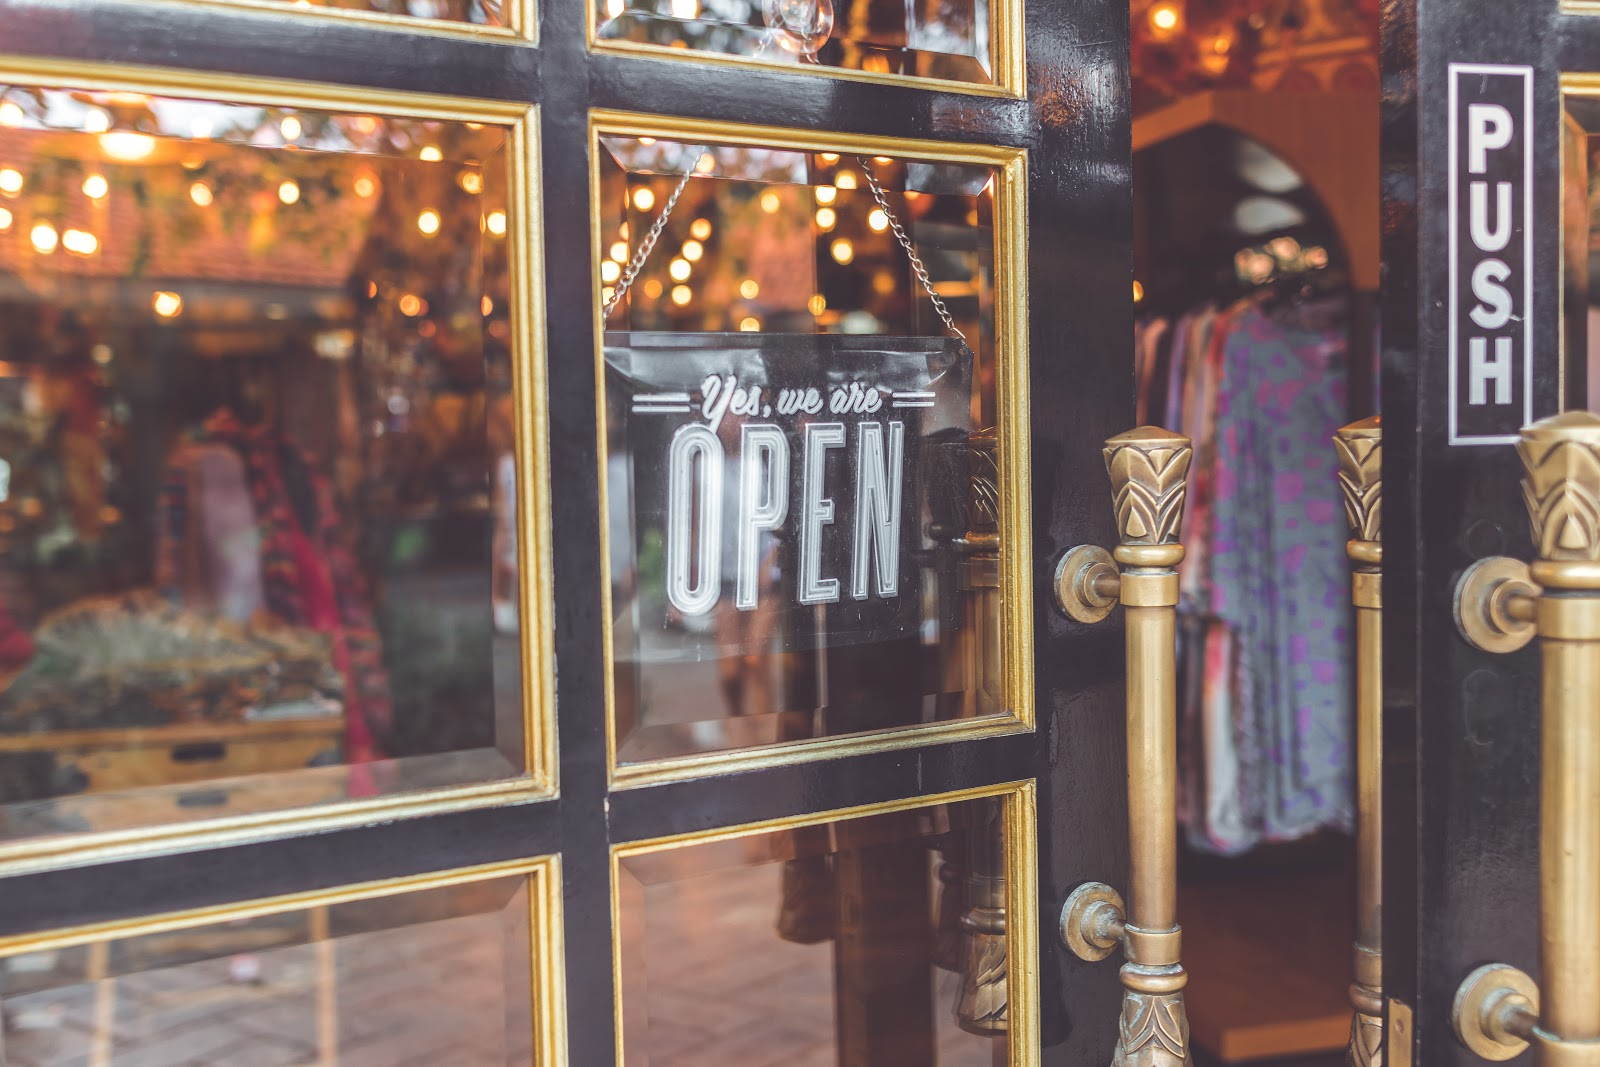 Shop window with open sign up